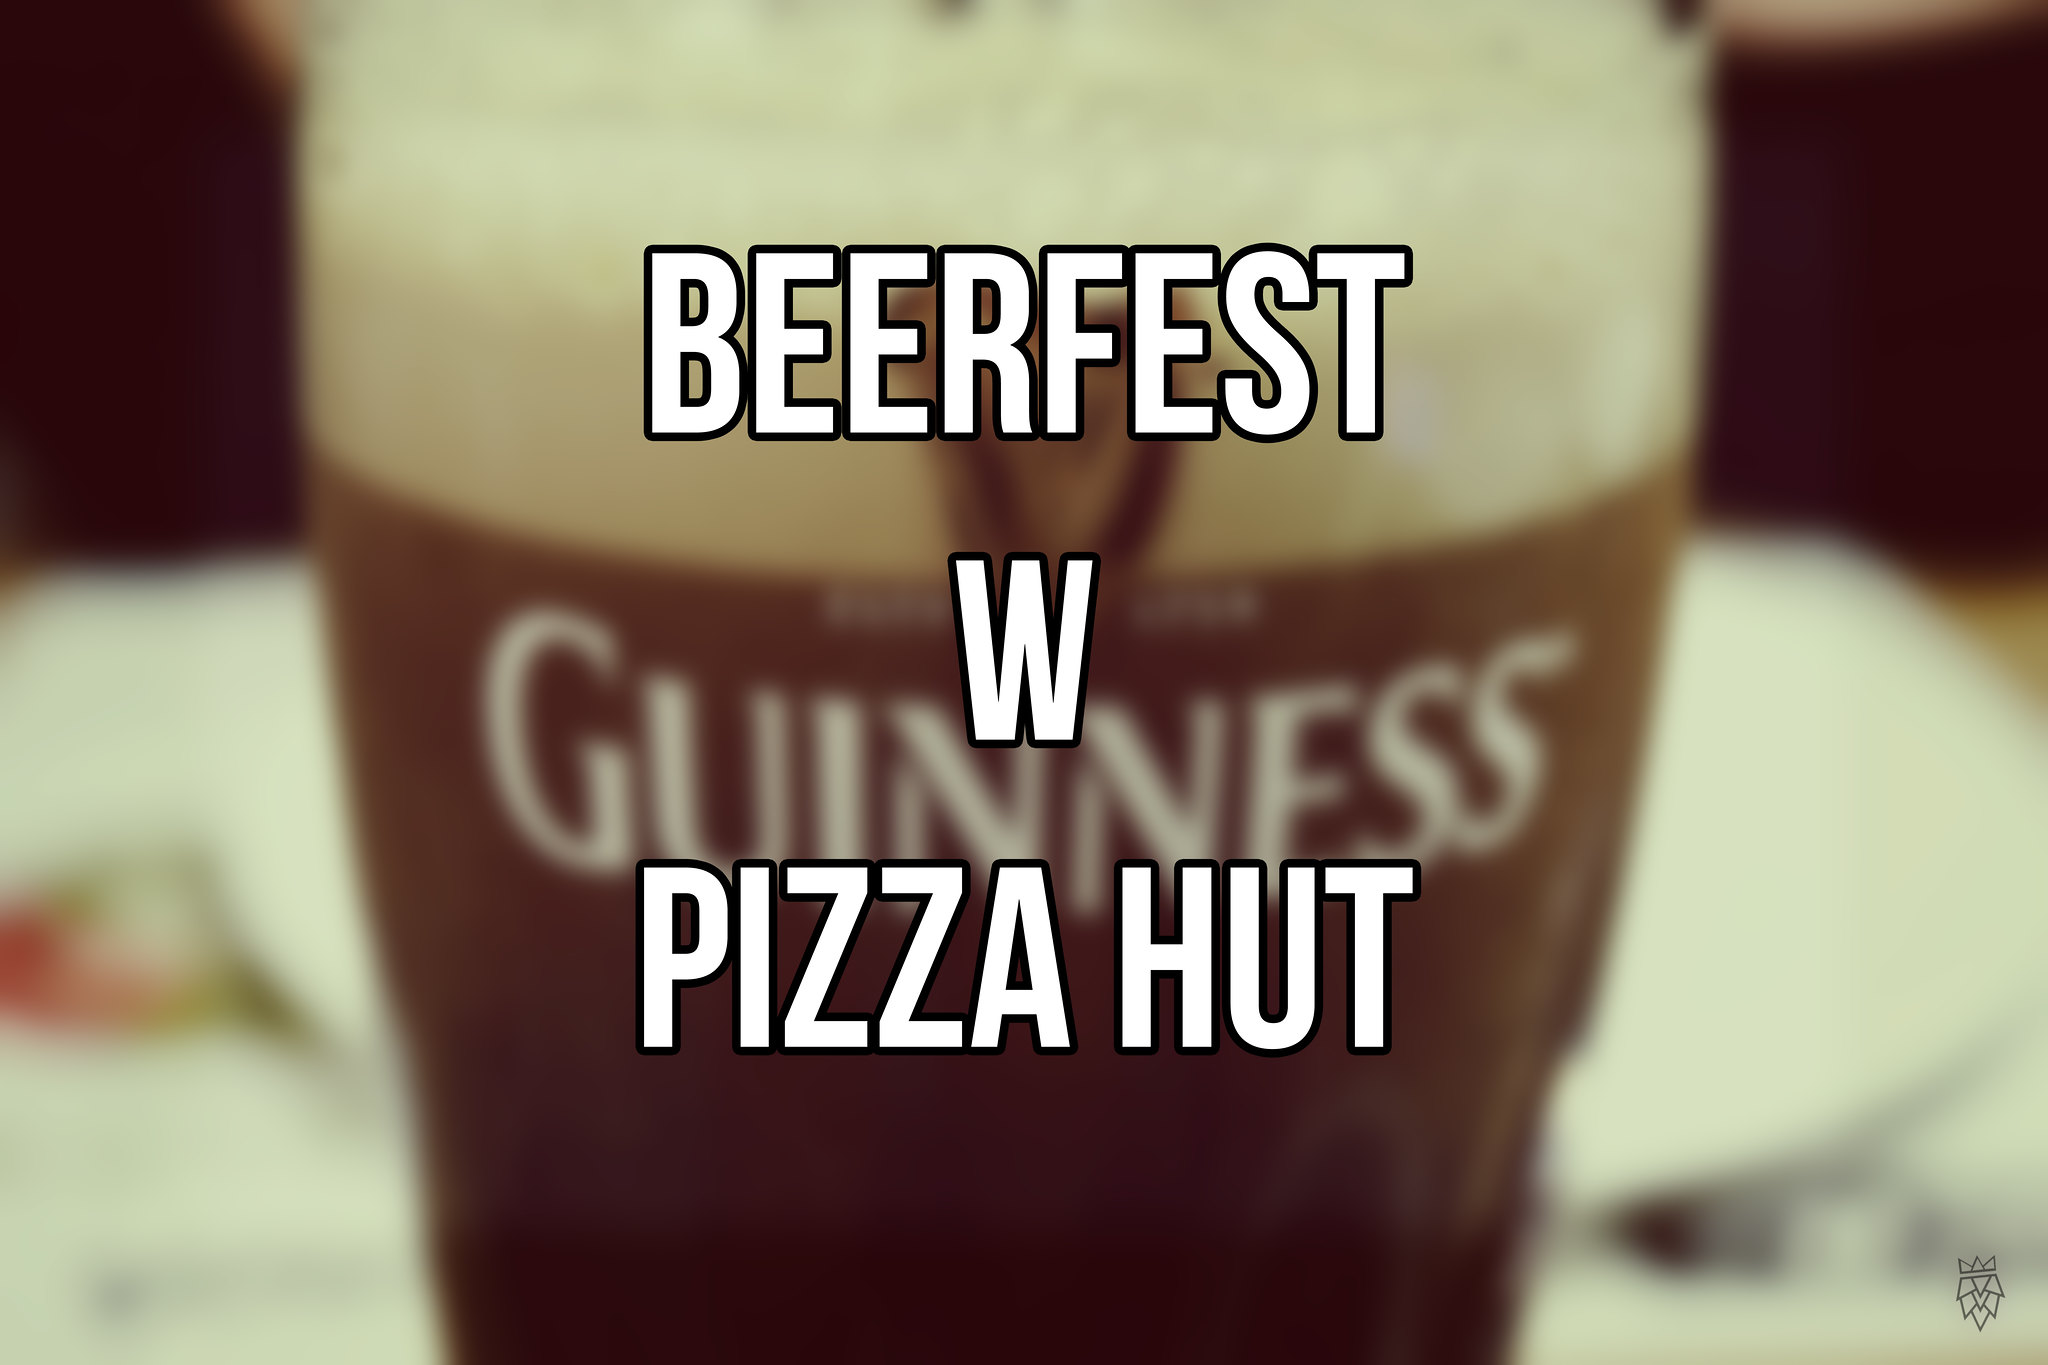 BeerFest Pizza Hut